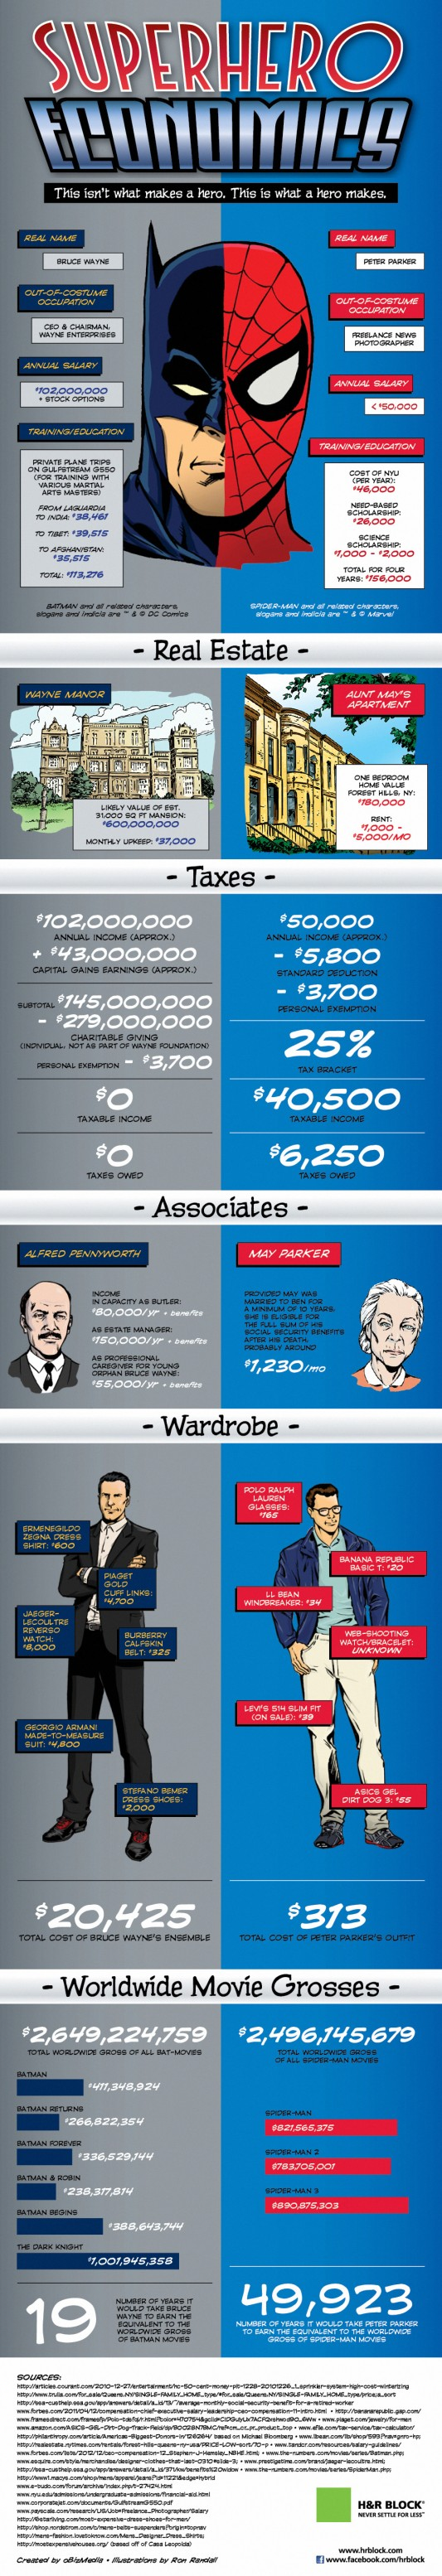 Superhero Economics Infographic